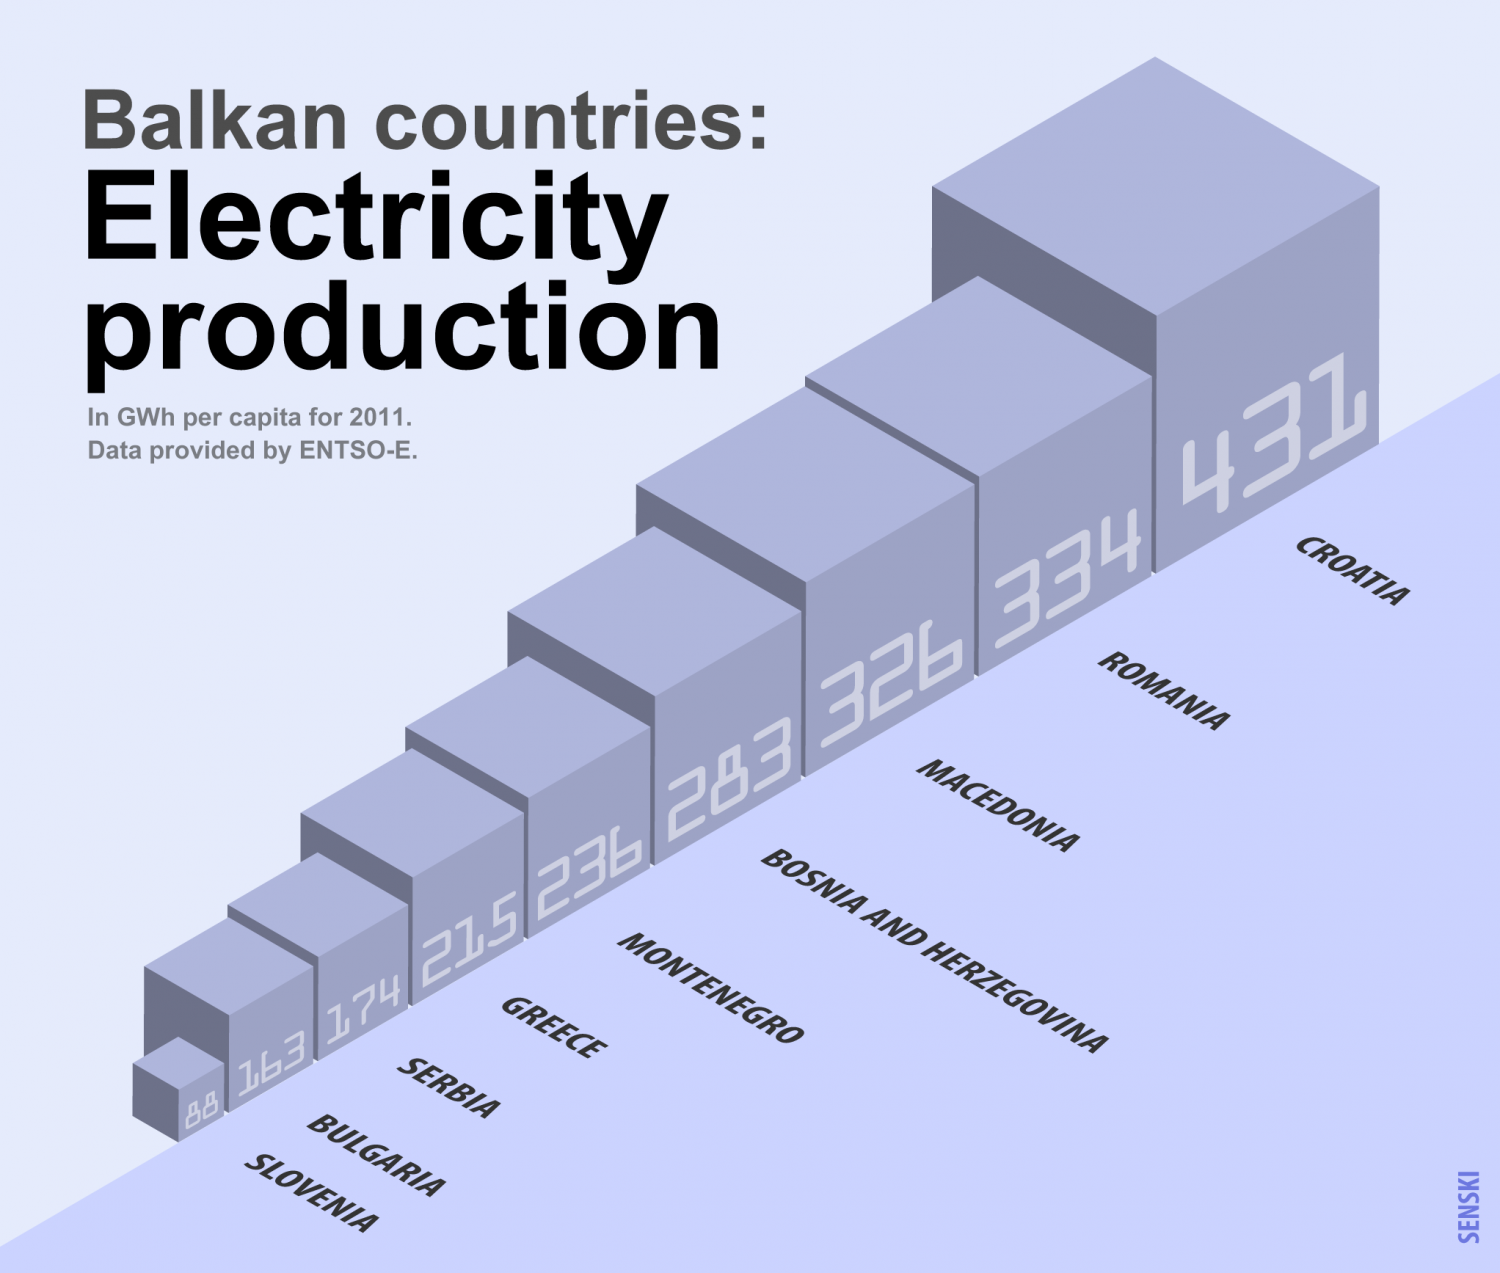 Balkan countries electricity production Infographic